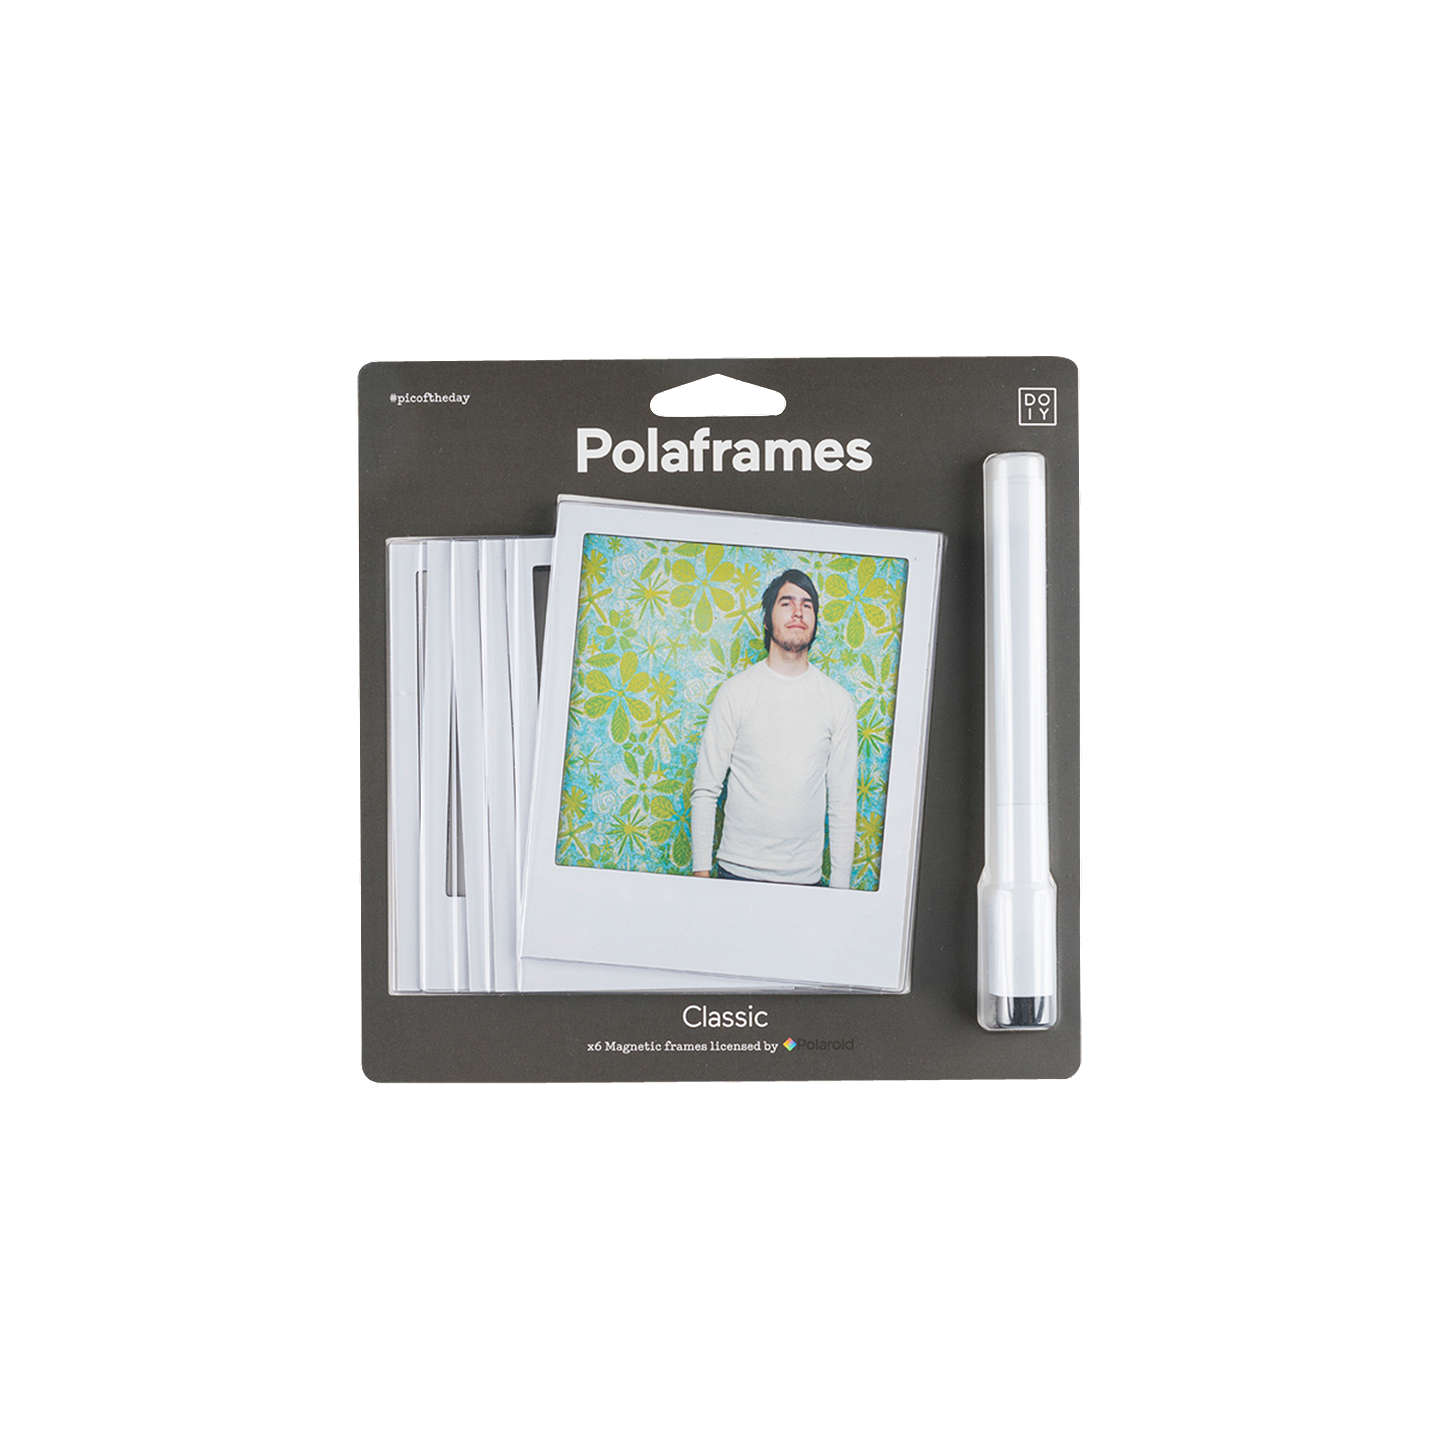 Offer: DOIY Classic Polaframes, Pack of 6 at John Lewis